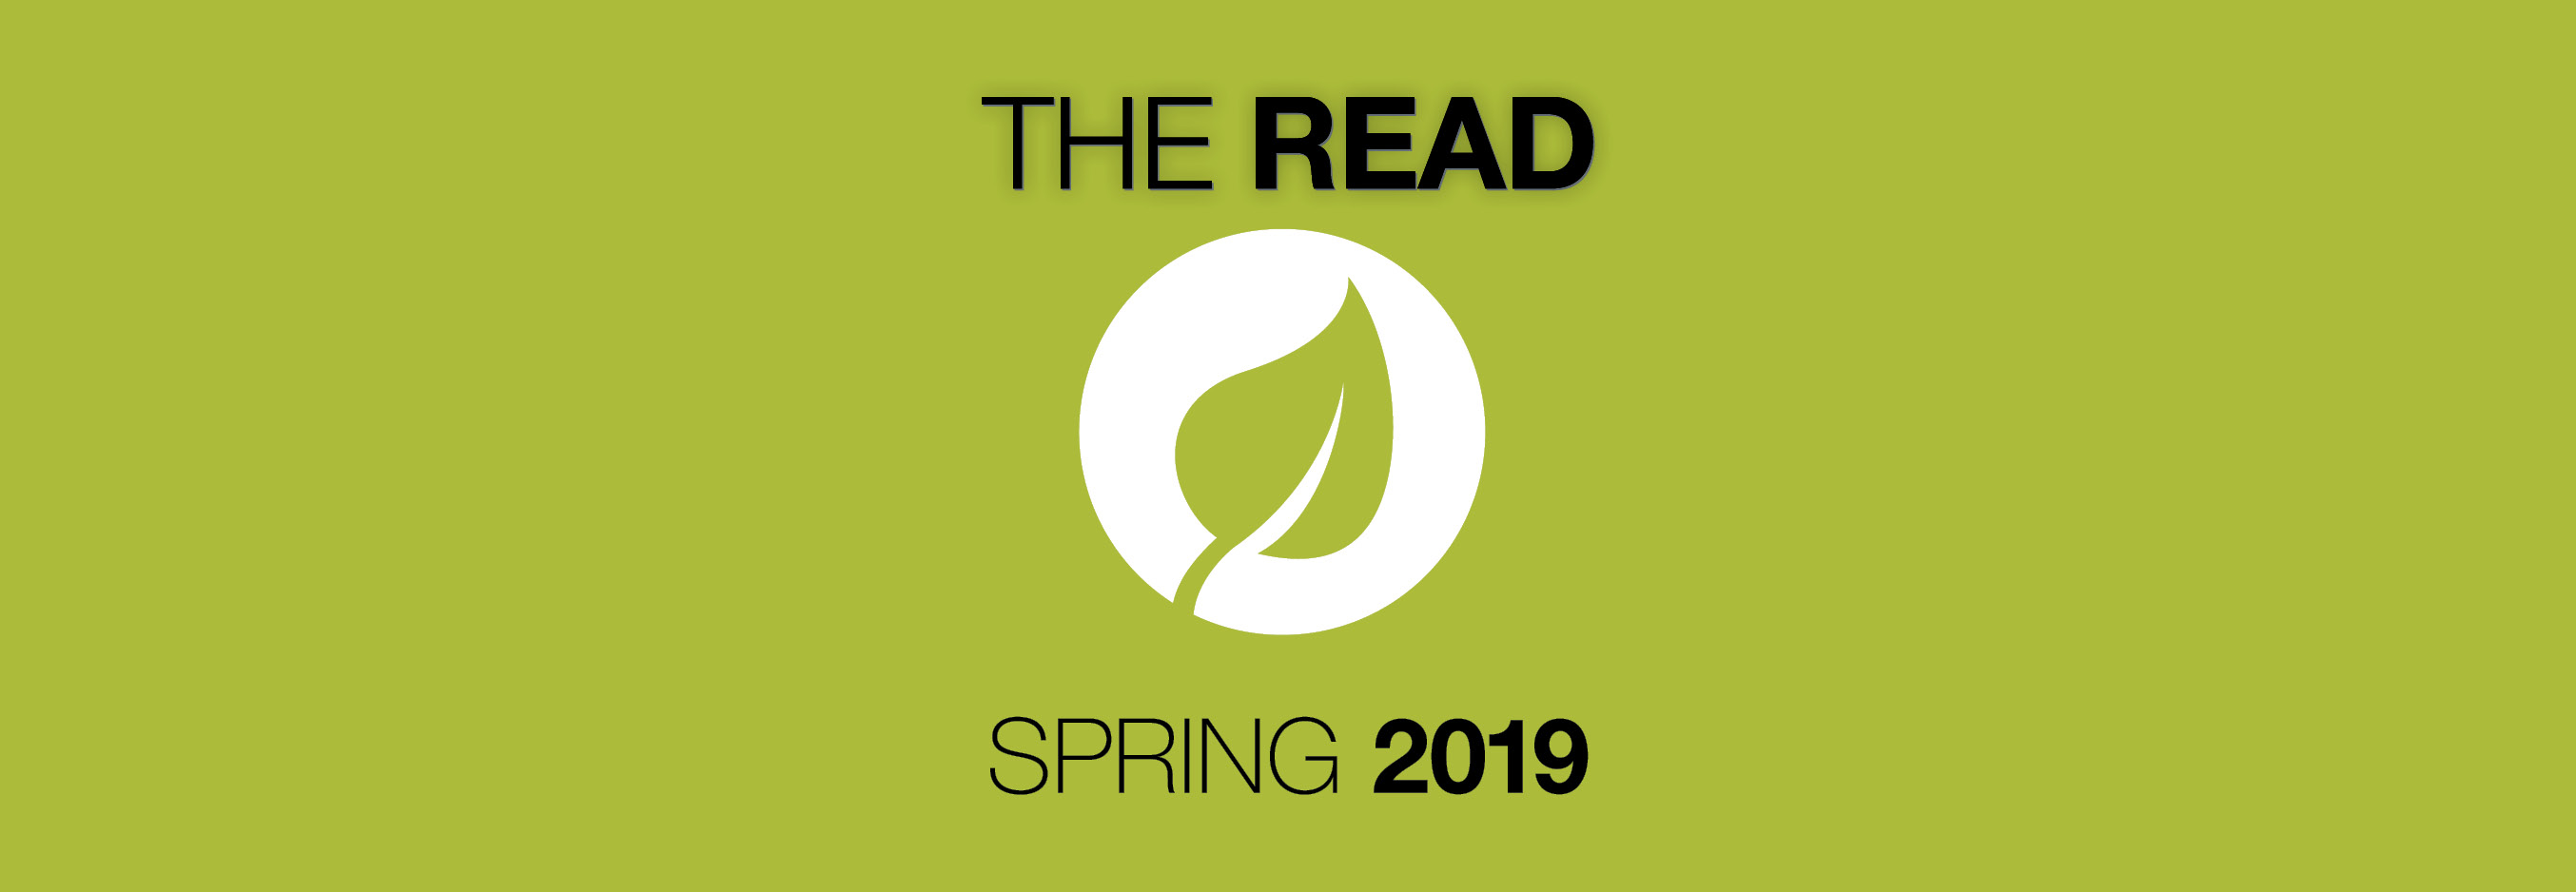 The Read - Spring 2019